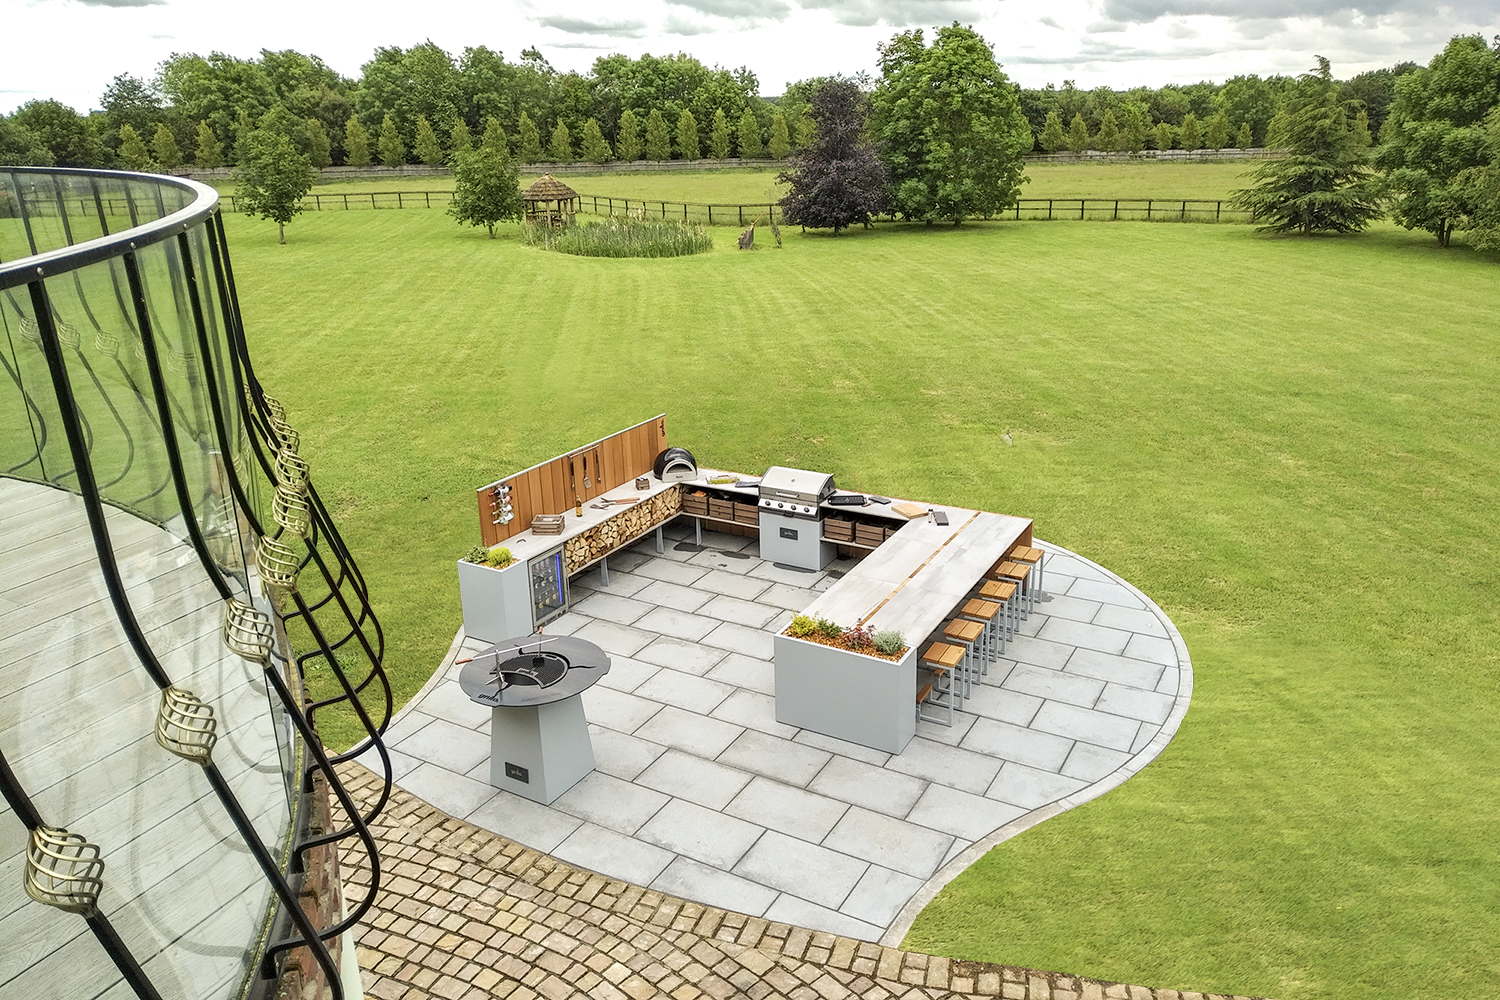 a large U shape Grillo Kitchen with under counter fridge, Logs, storage crates, Delivita, Cadac bar seating, planters, chefs anvil view from balcony